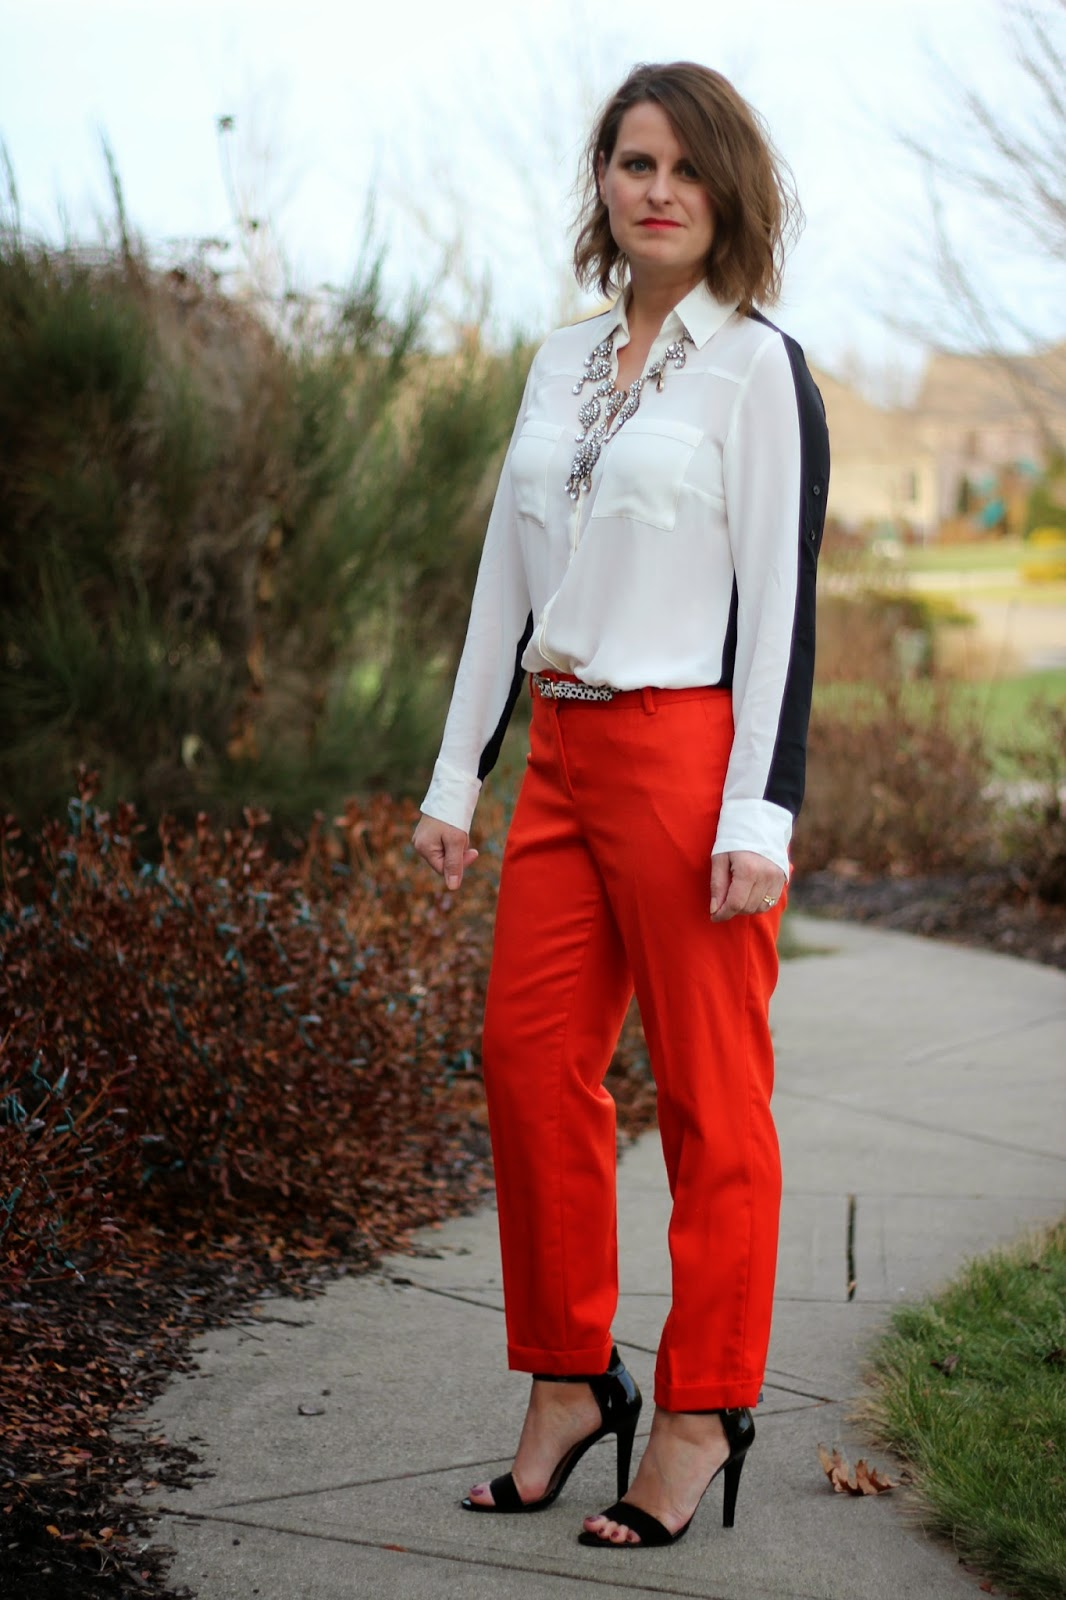 J crew tomato red pants, express two tone shirts, holiday outfit, office party look